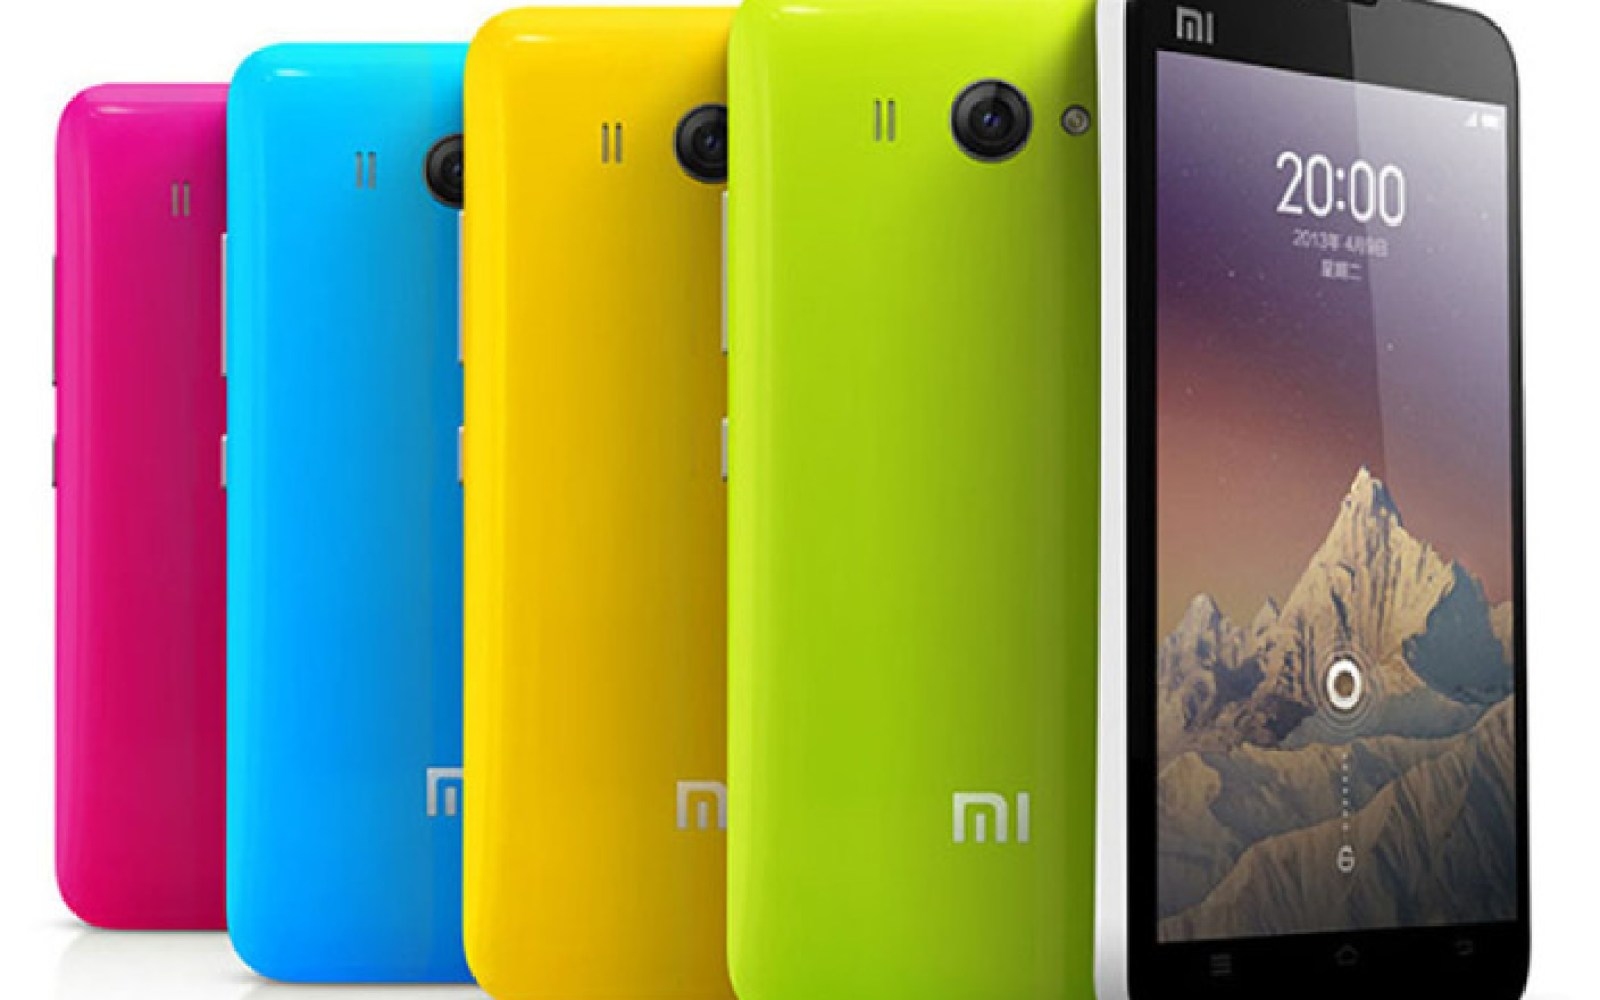 Xiaomi thinks it can top Apple and Samsung as world's largest smartphone maker within a decade